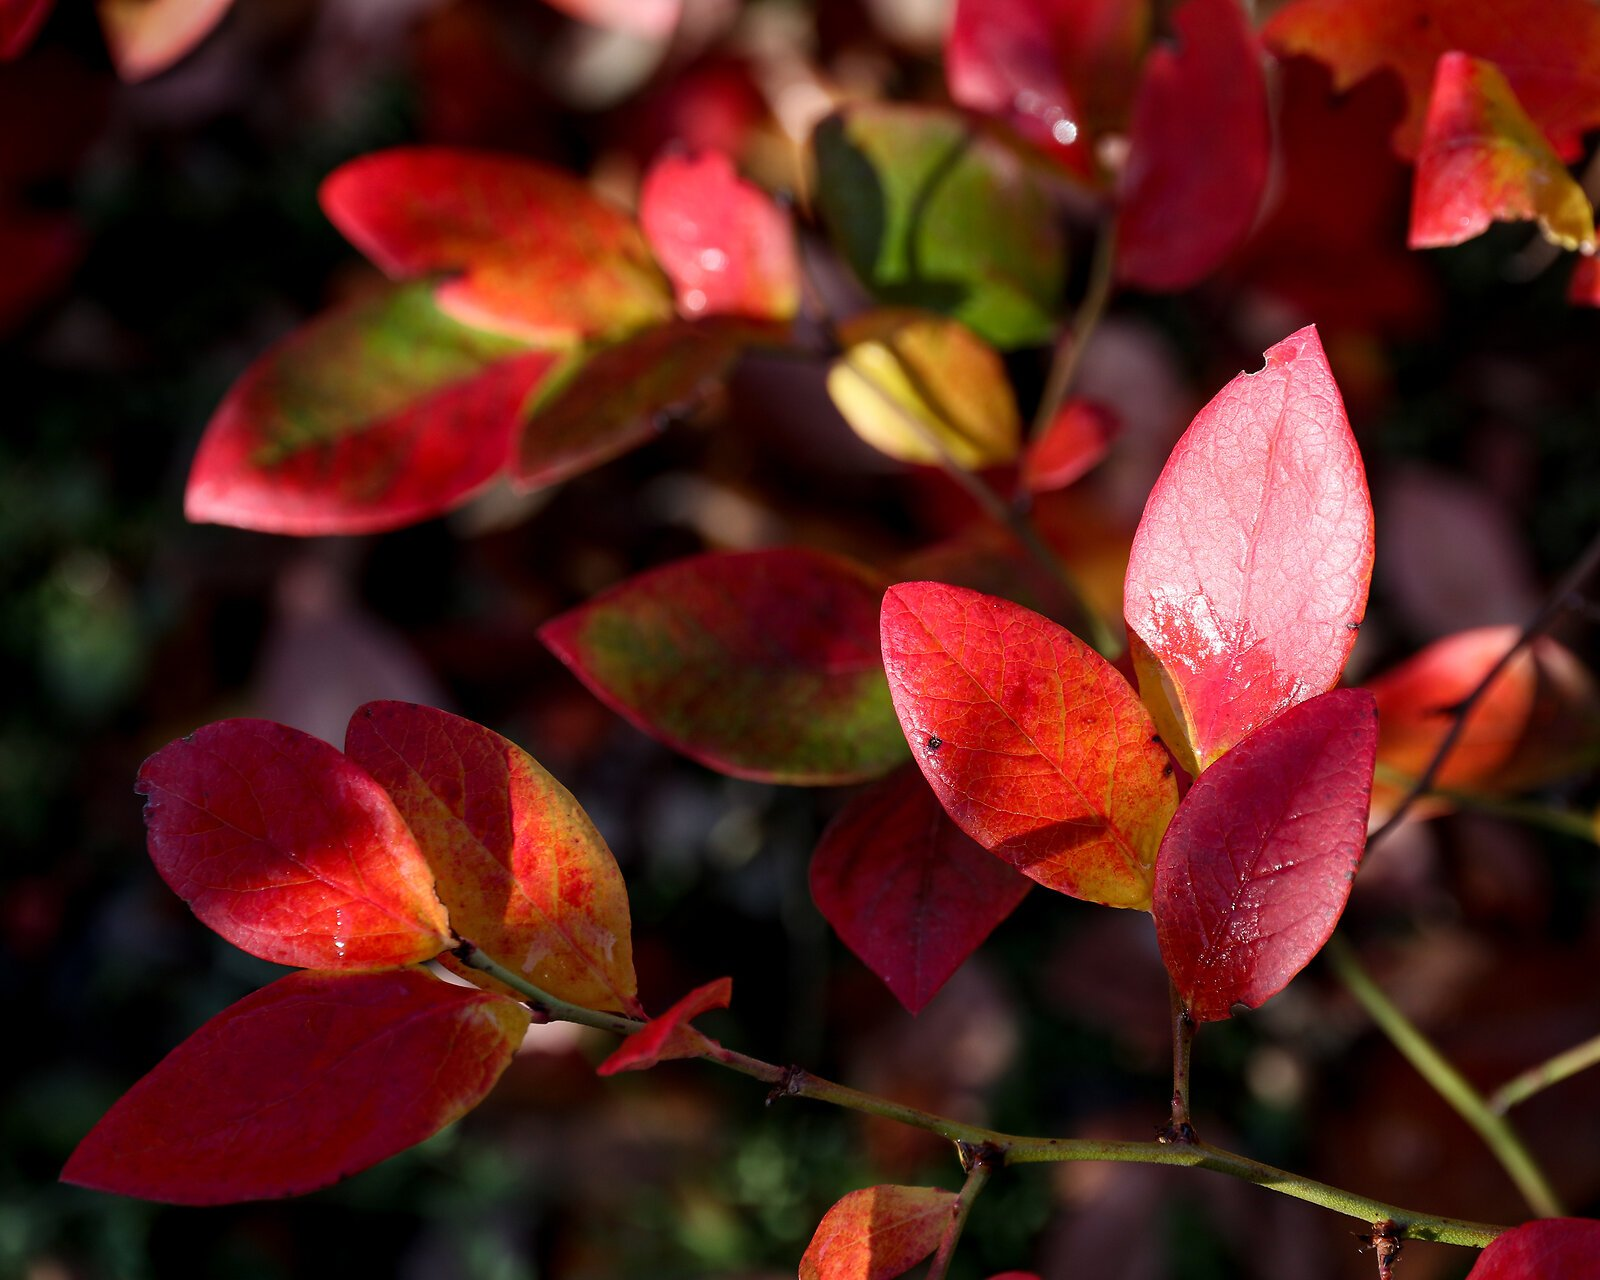 blueberry_leaves_CanM100_15to85_Dec20.jpg